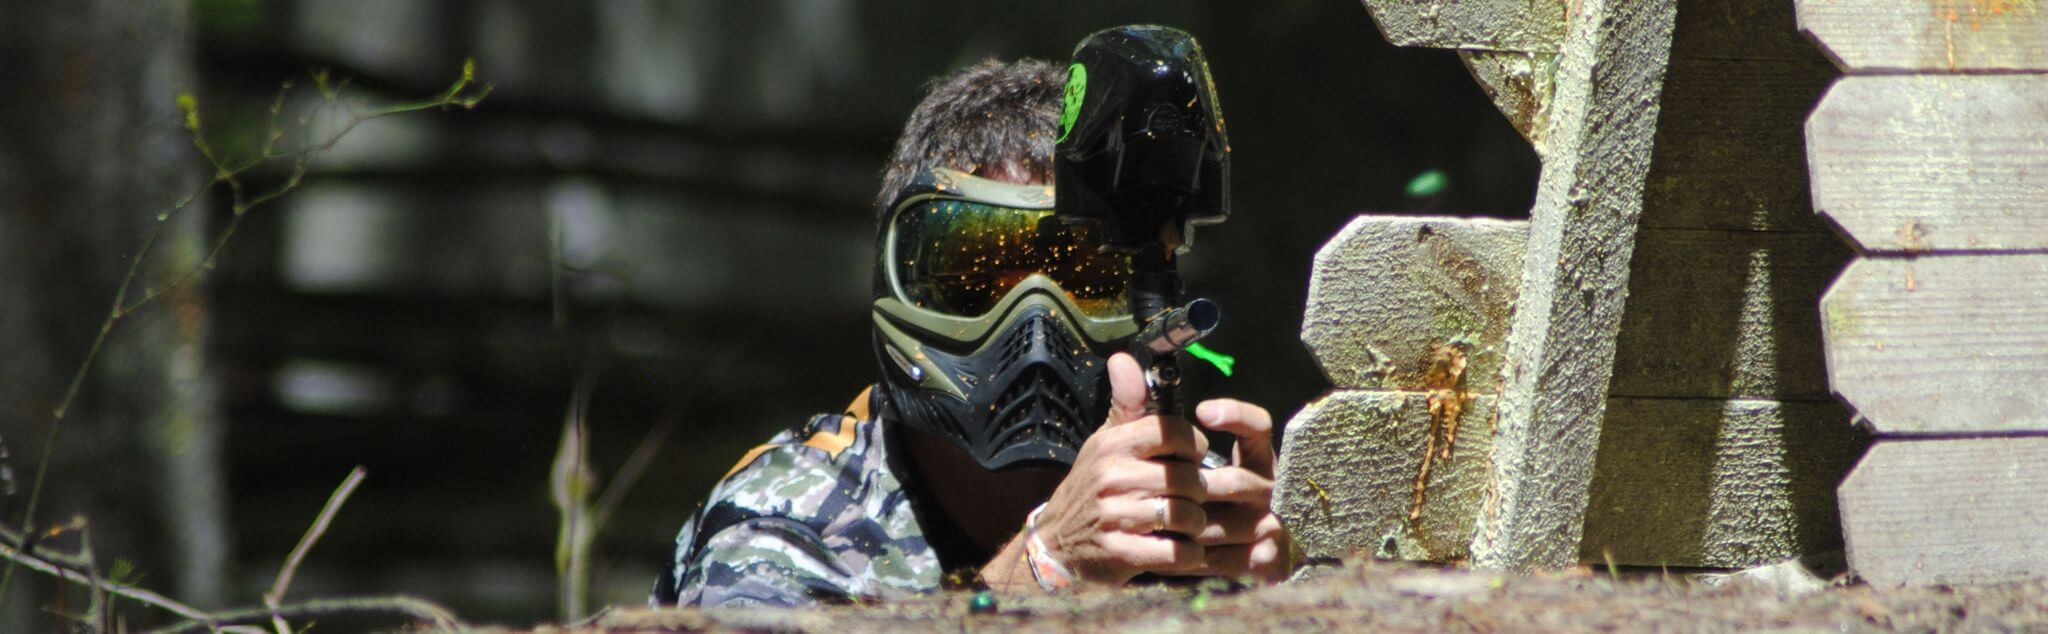 Paintball in Gran Canaria